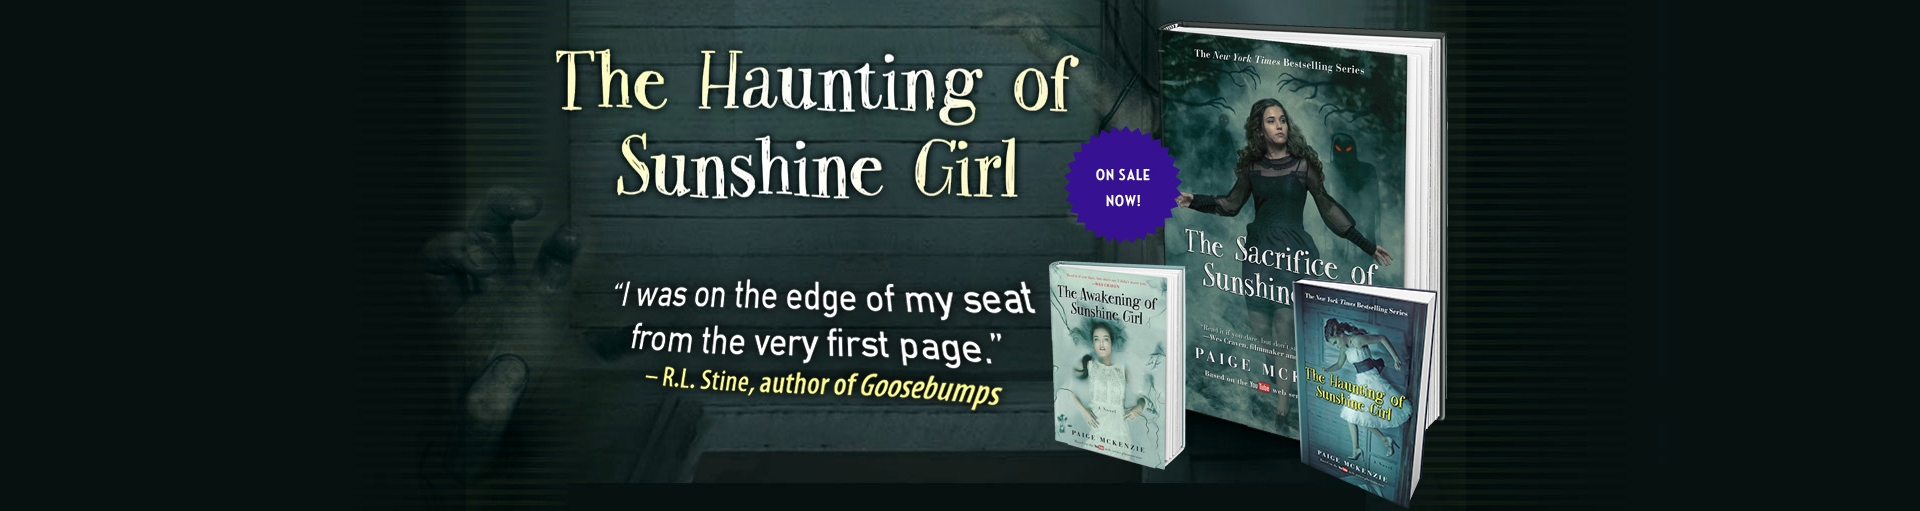 The Haunting of Sunshine Girl | Hachette Book Group